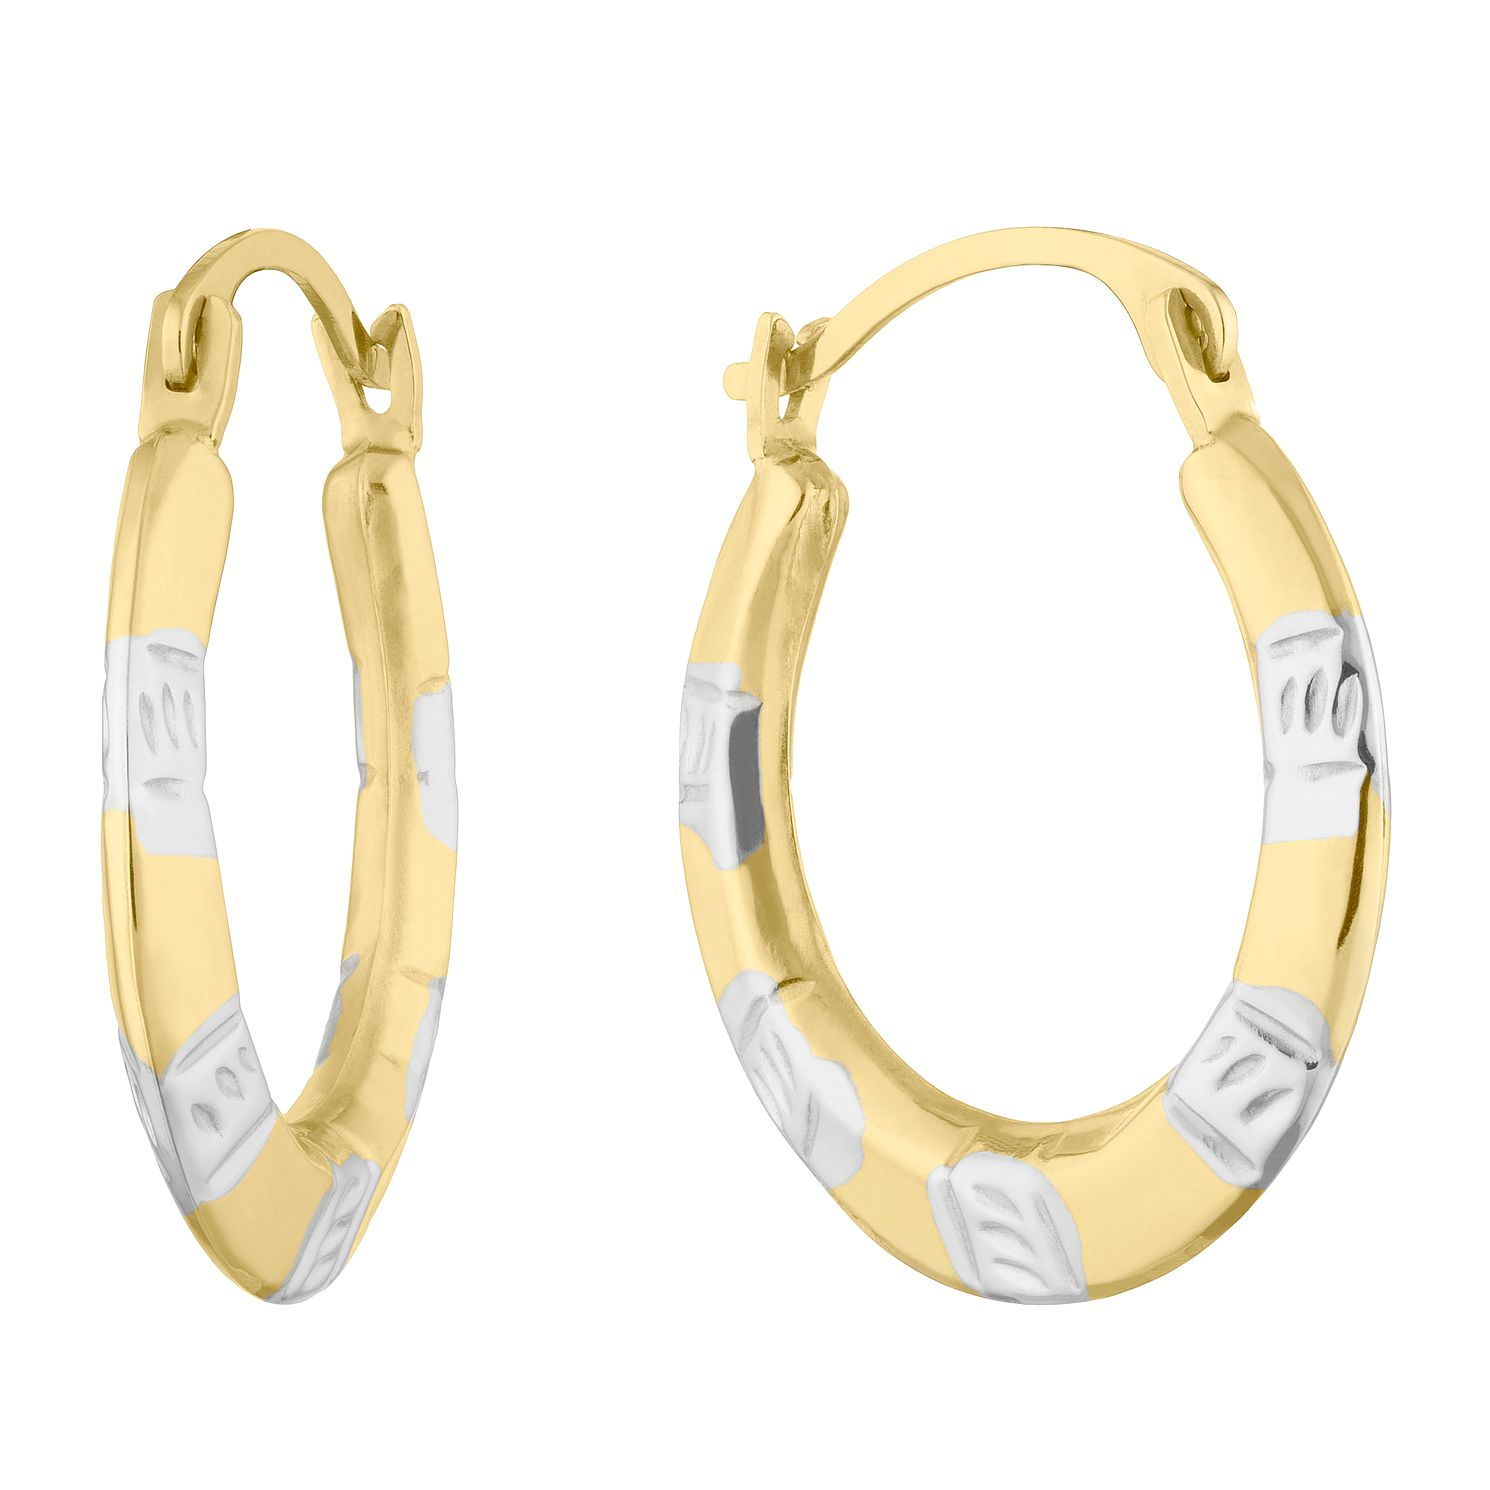 9ct Yellow Gold & Rhodium Plated Creole Hoop Earrings - Product number 5126010